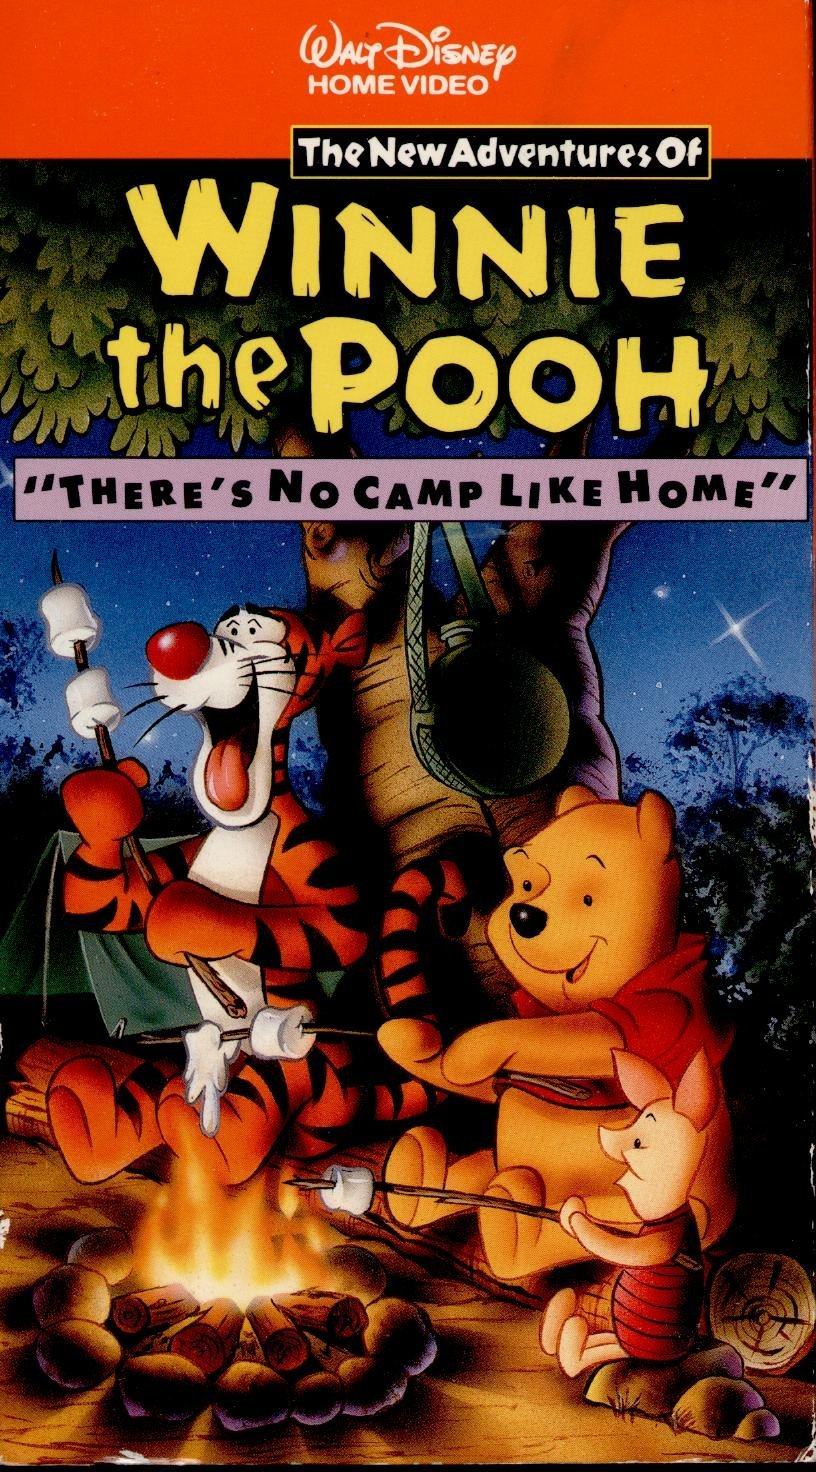 The New Adventures of Winnie the Pooh videography - Disney Wiki